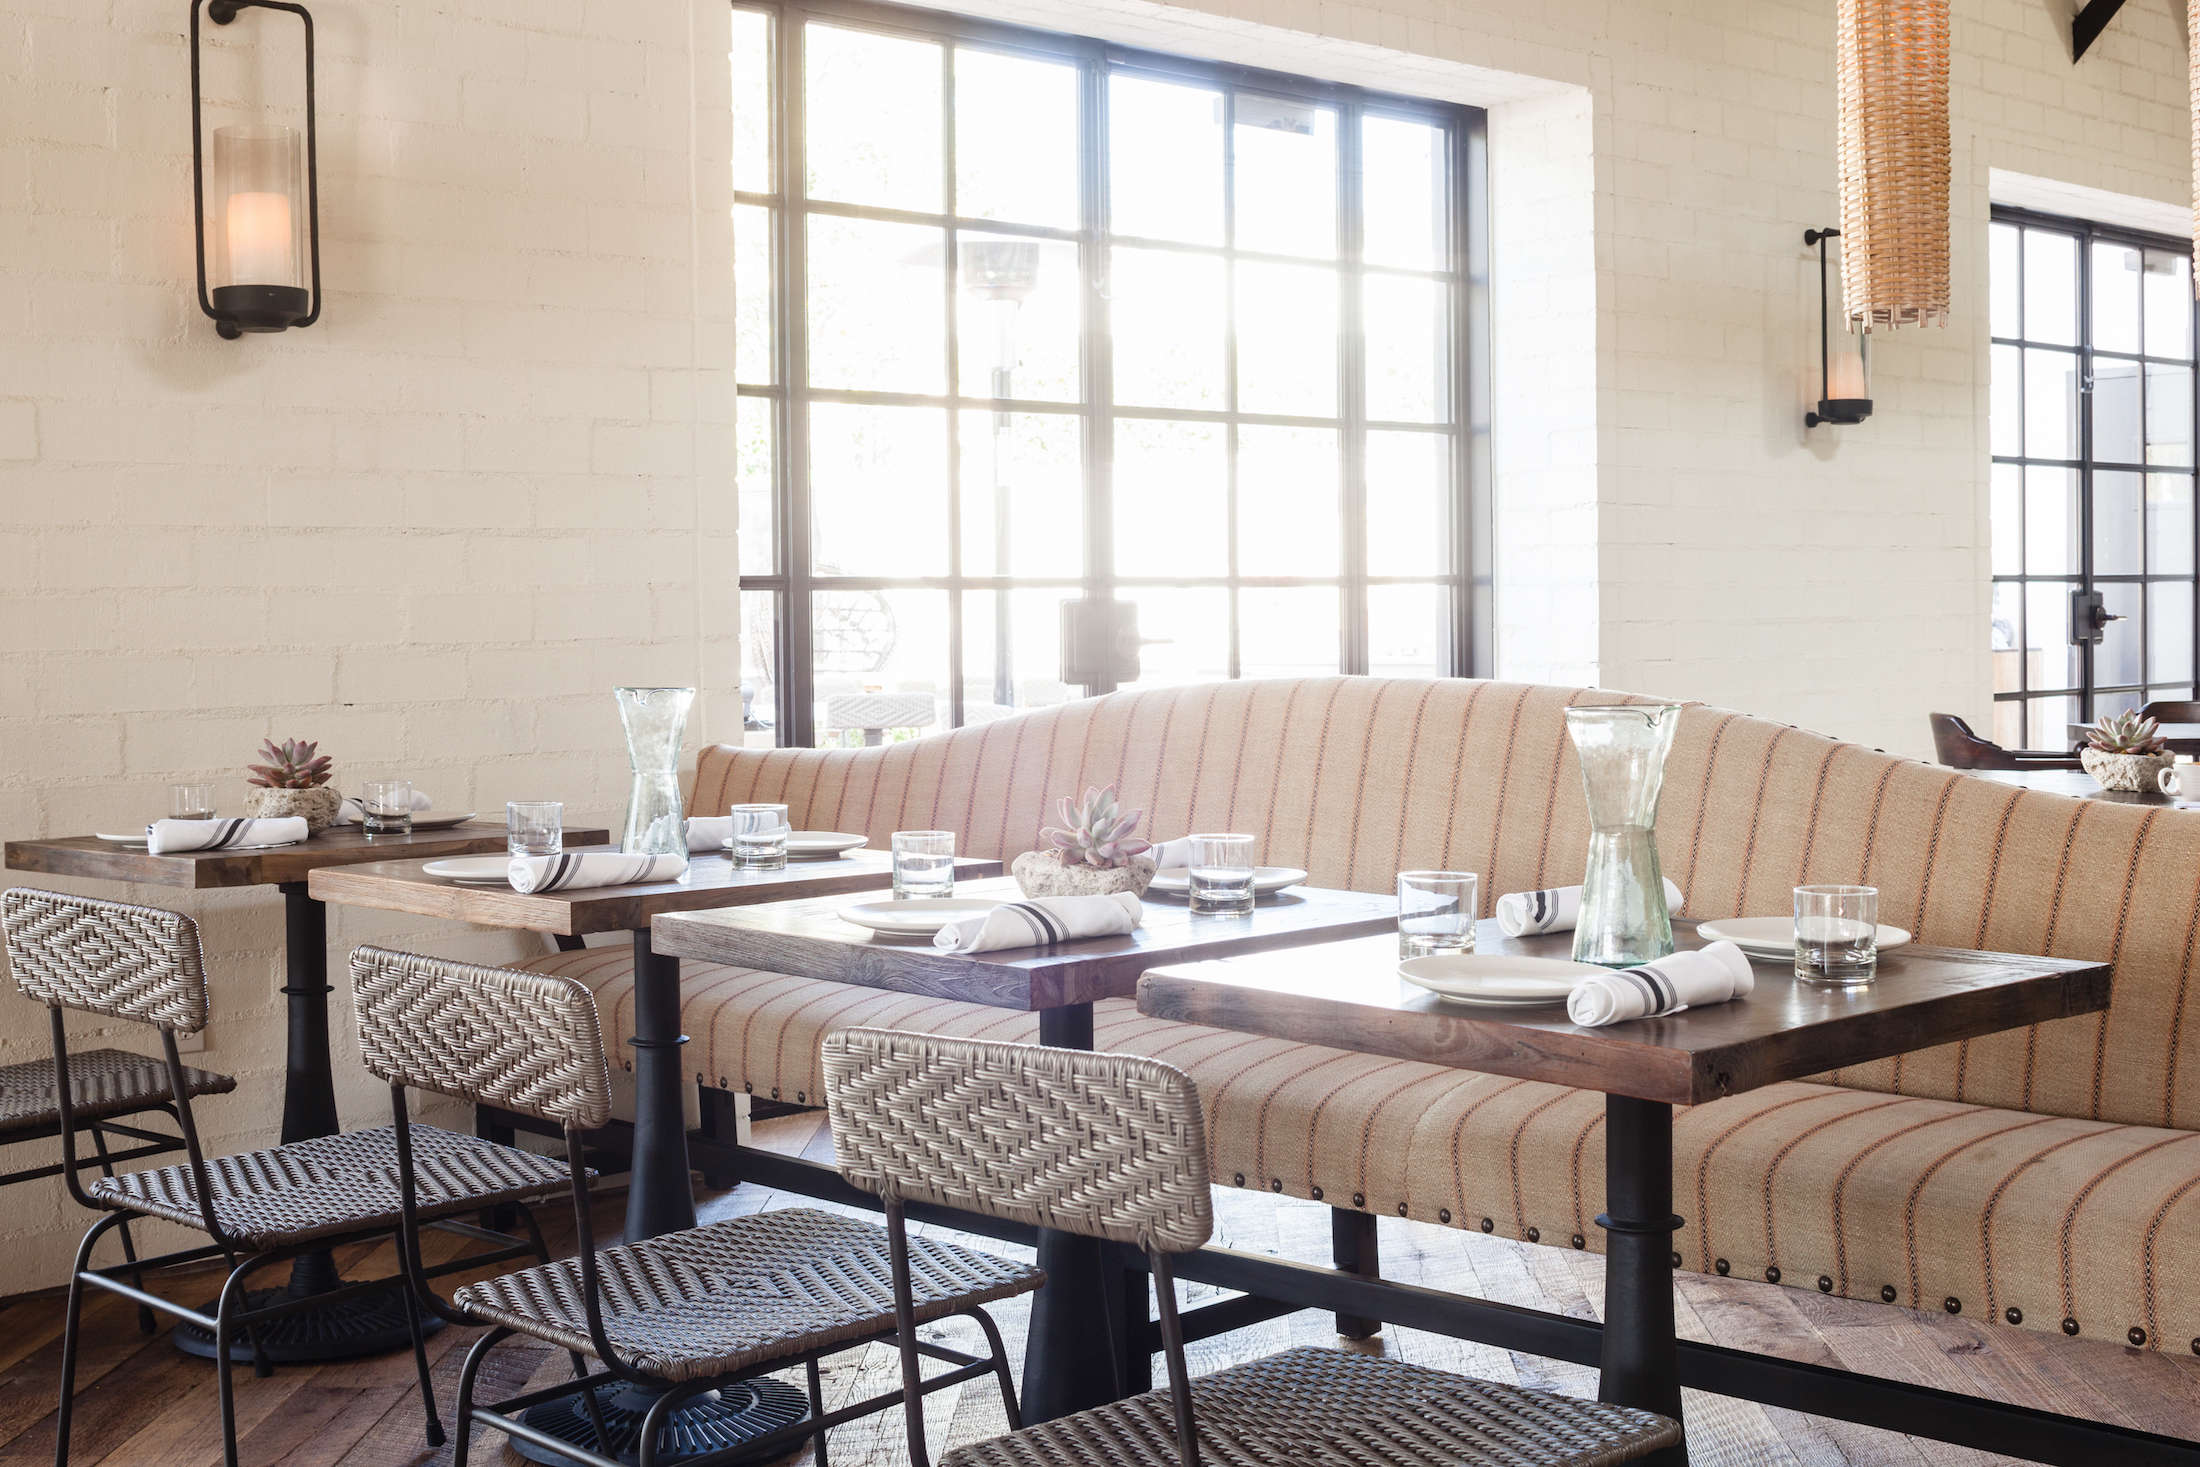 gracias-madre-restaurant-west-hollywood-la-natural-striped-banquette